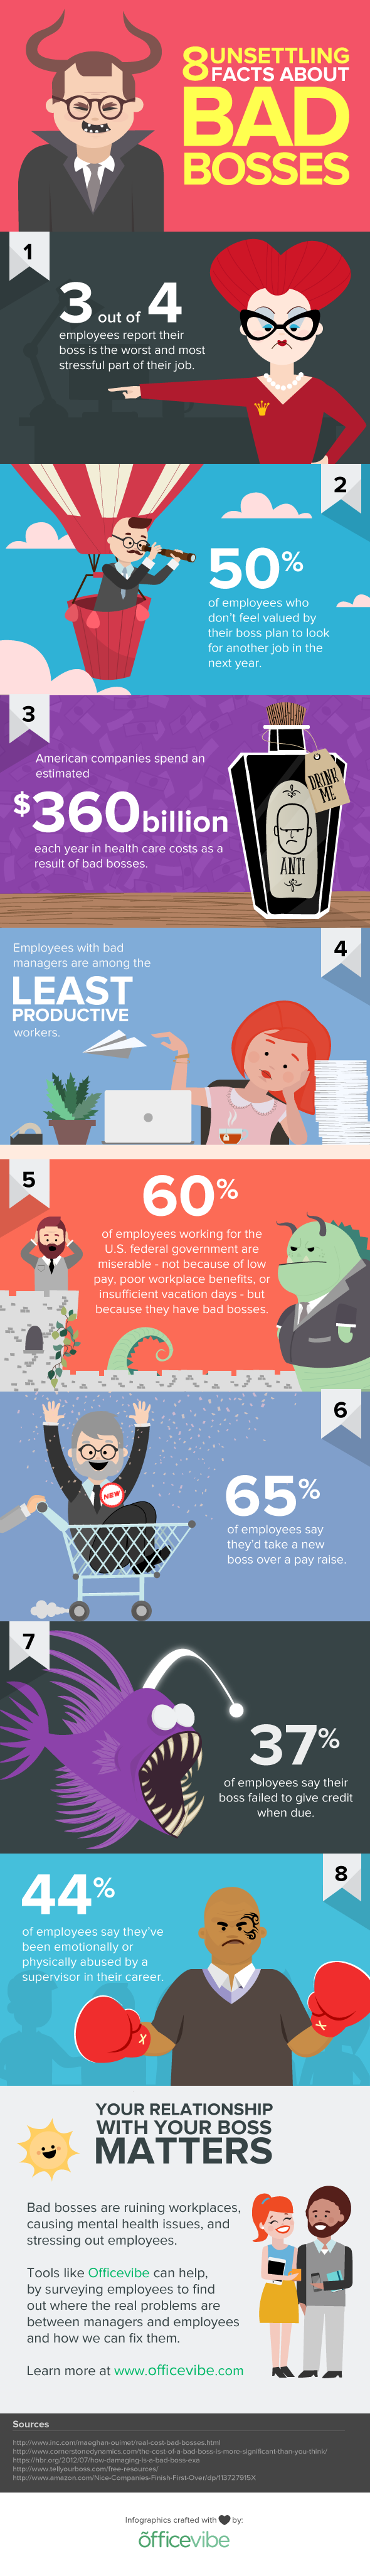 how a terrible boss really affects you hint it s bad infographic courtesy of officevibe photo of evil boss courtesy of shutterstock